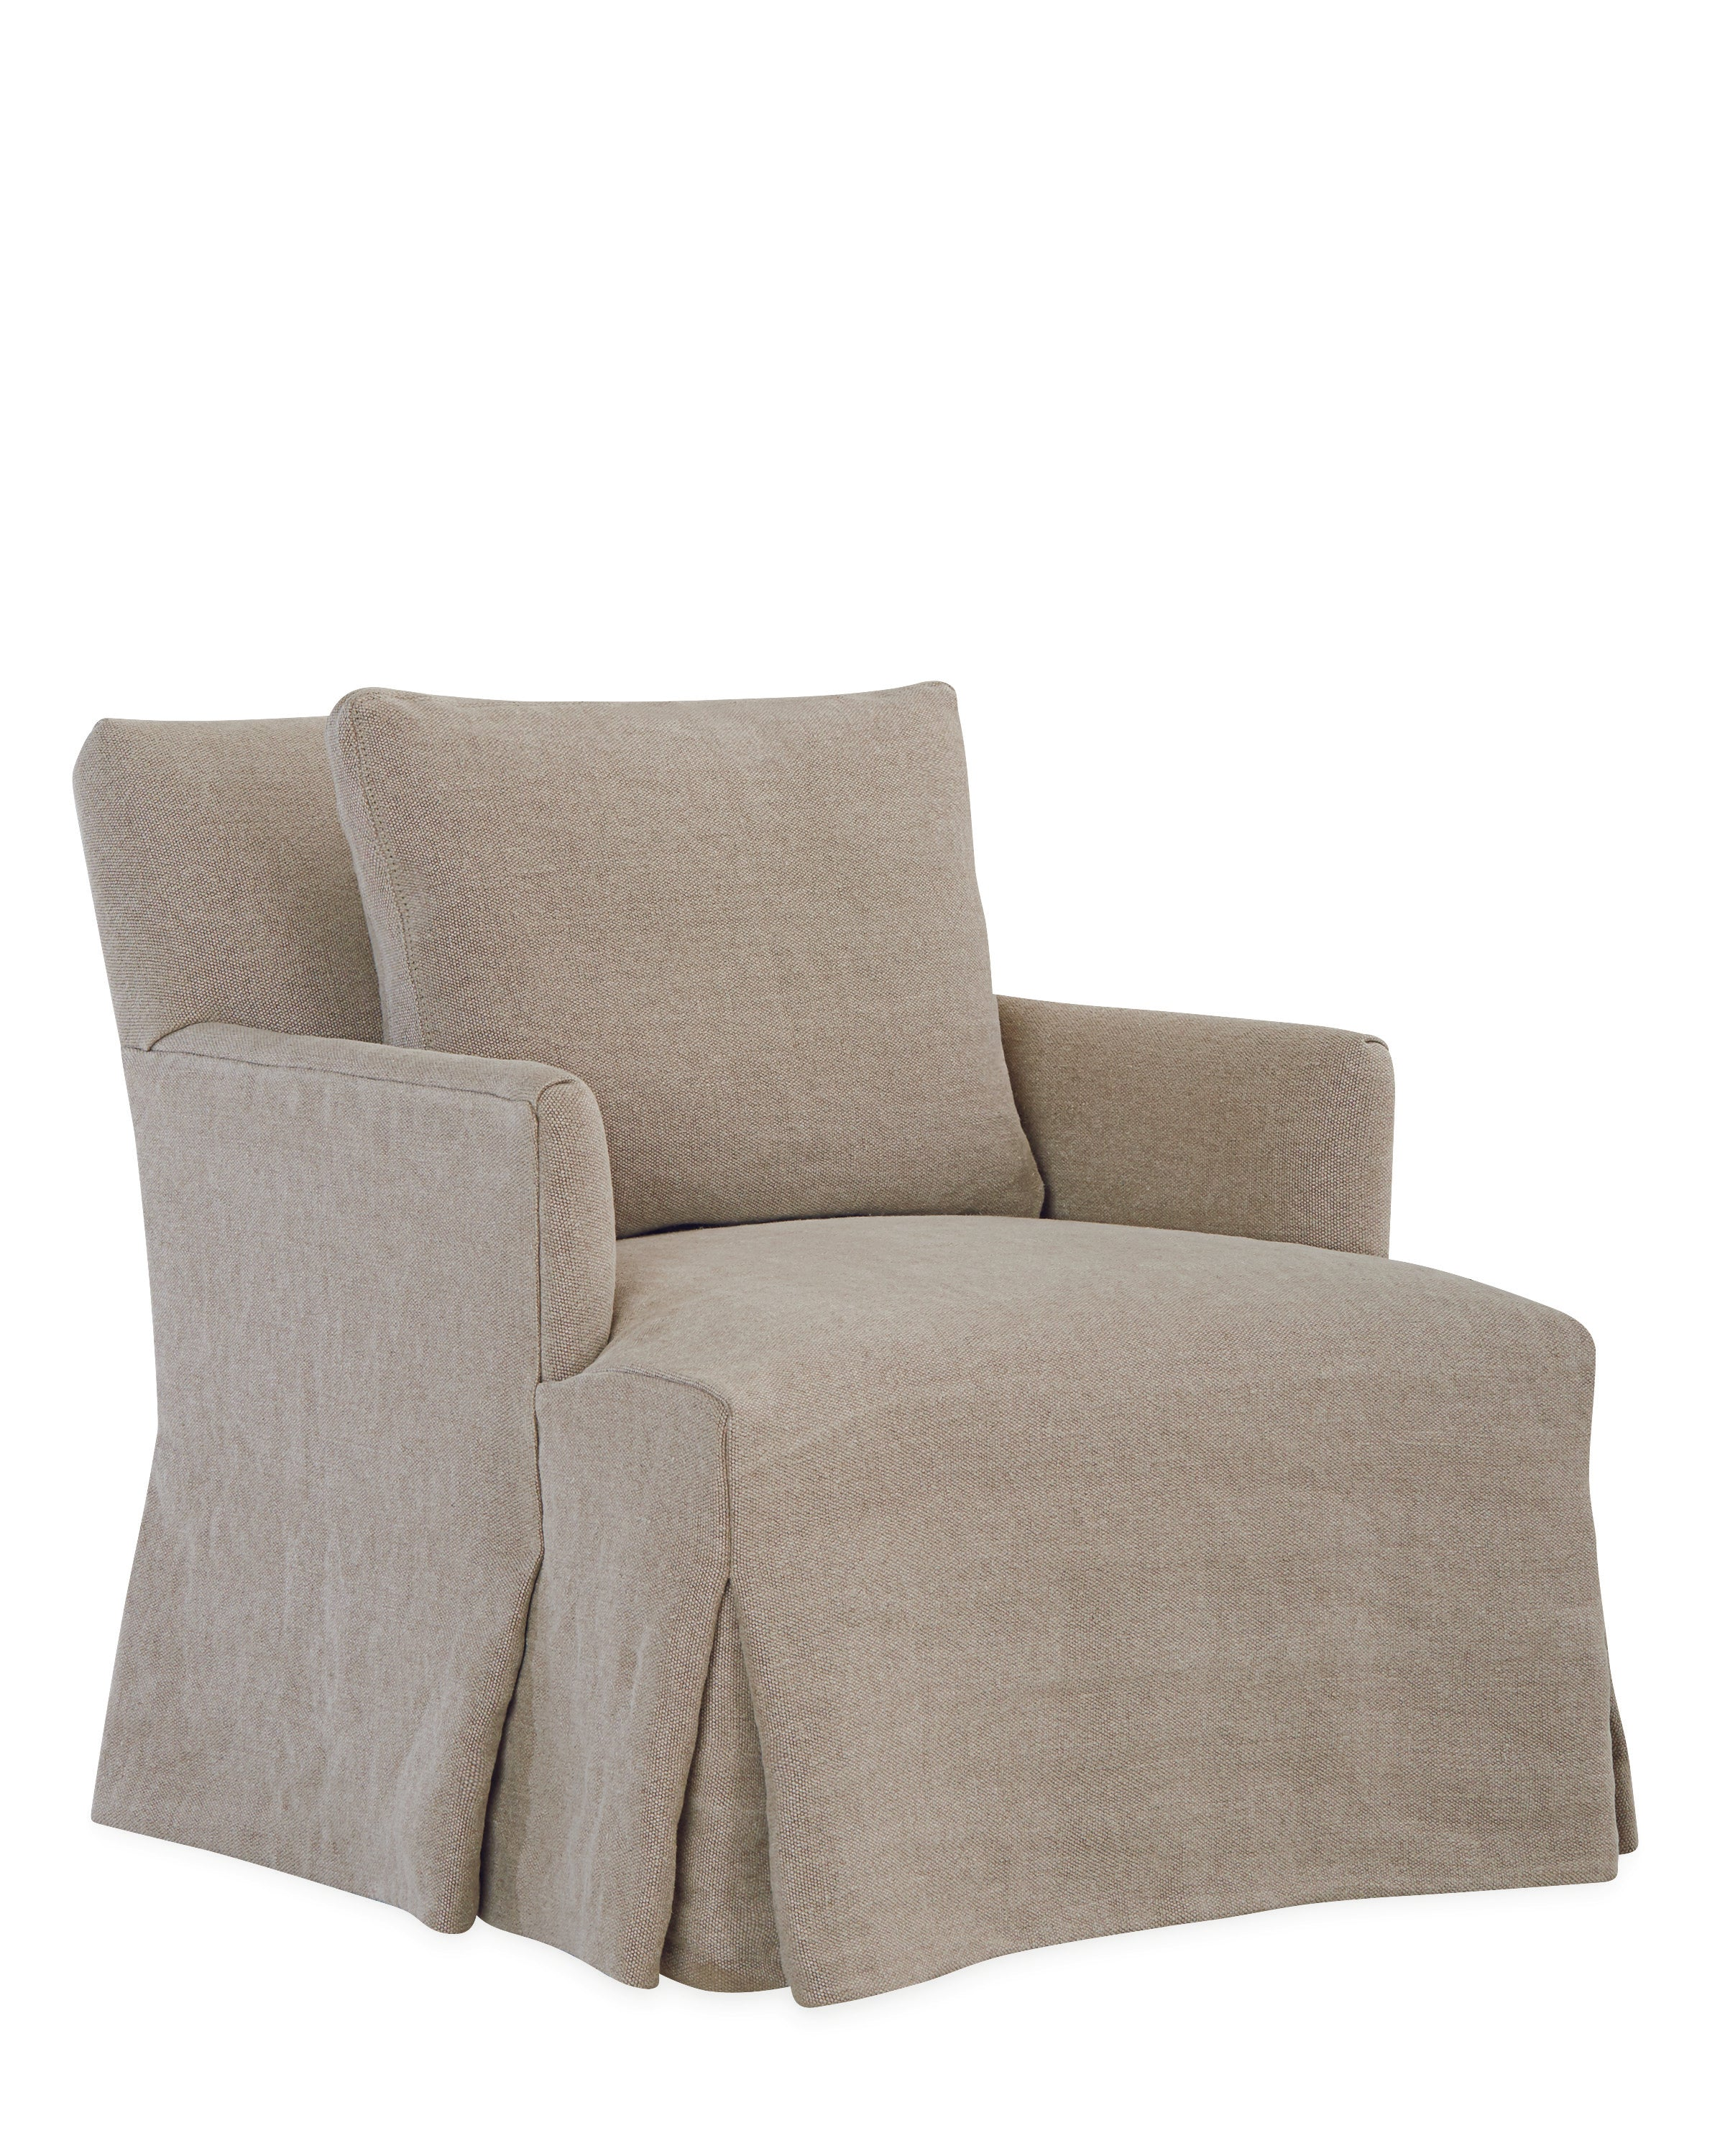 Mckenzie Swivel Chair